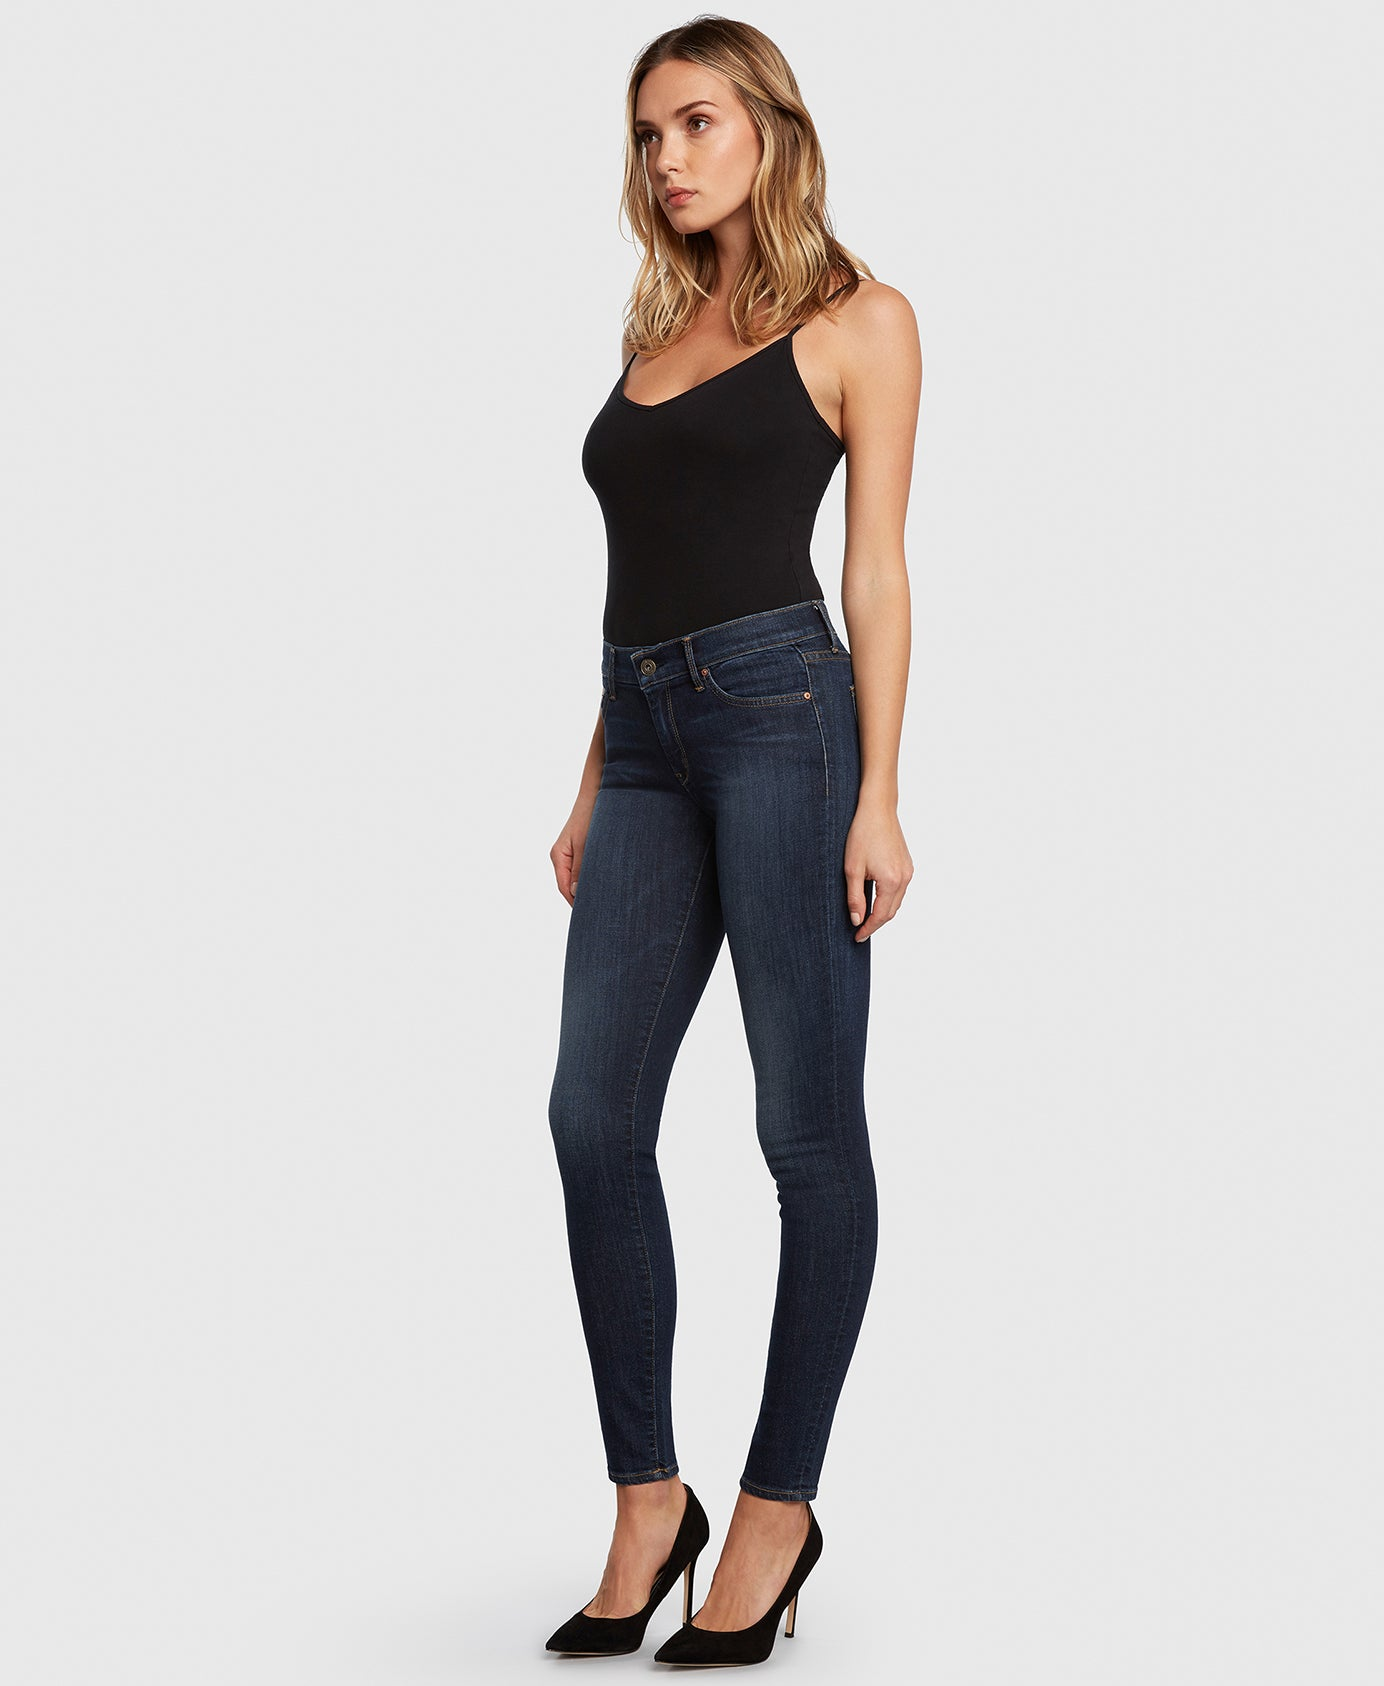 Principle DREAMER in Poison Heart dark wash skinny jeans side